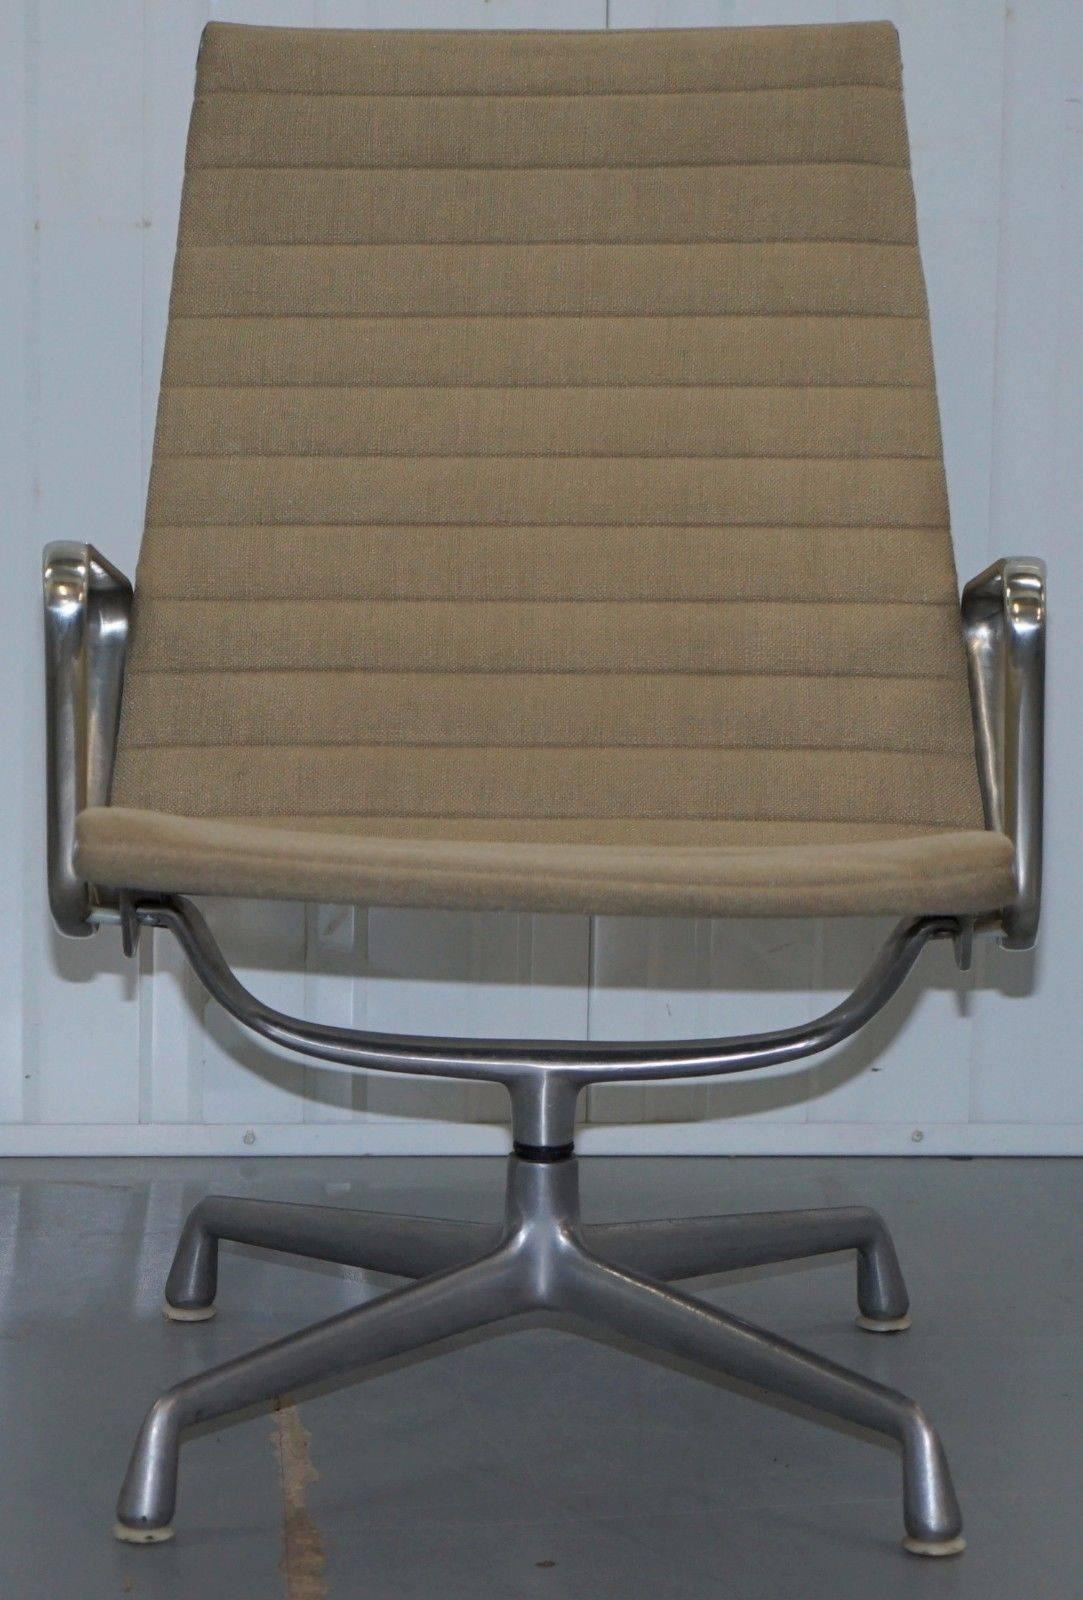 1 of 3 Vitra Eames Herman Miller EA 116 Hopsack Swivel